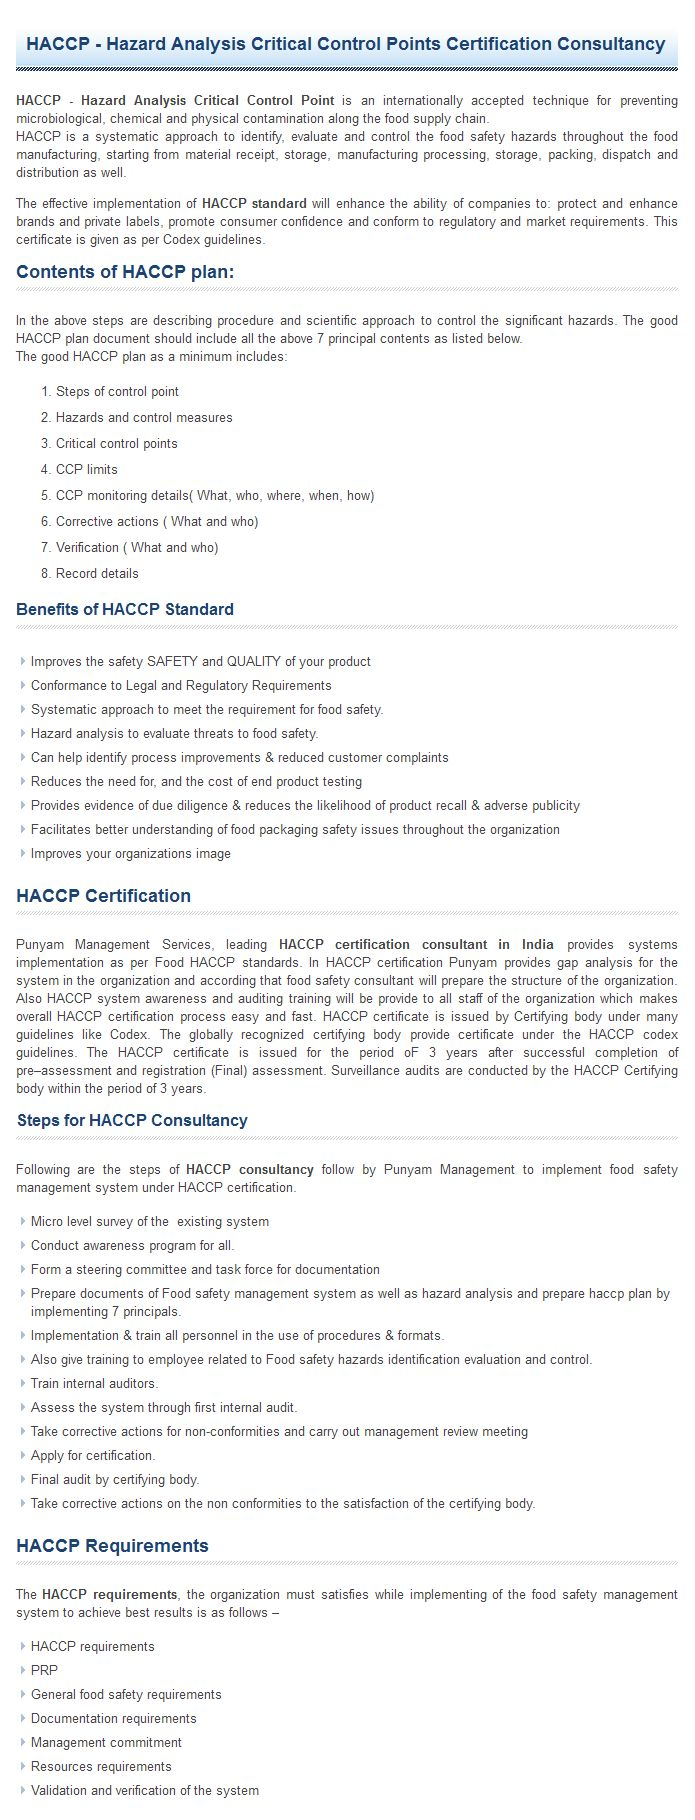 best ideas about haccp is bacon jerky food pics haccp certification for food safety is a management system in which food safety is addressed through